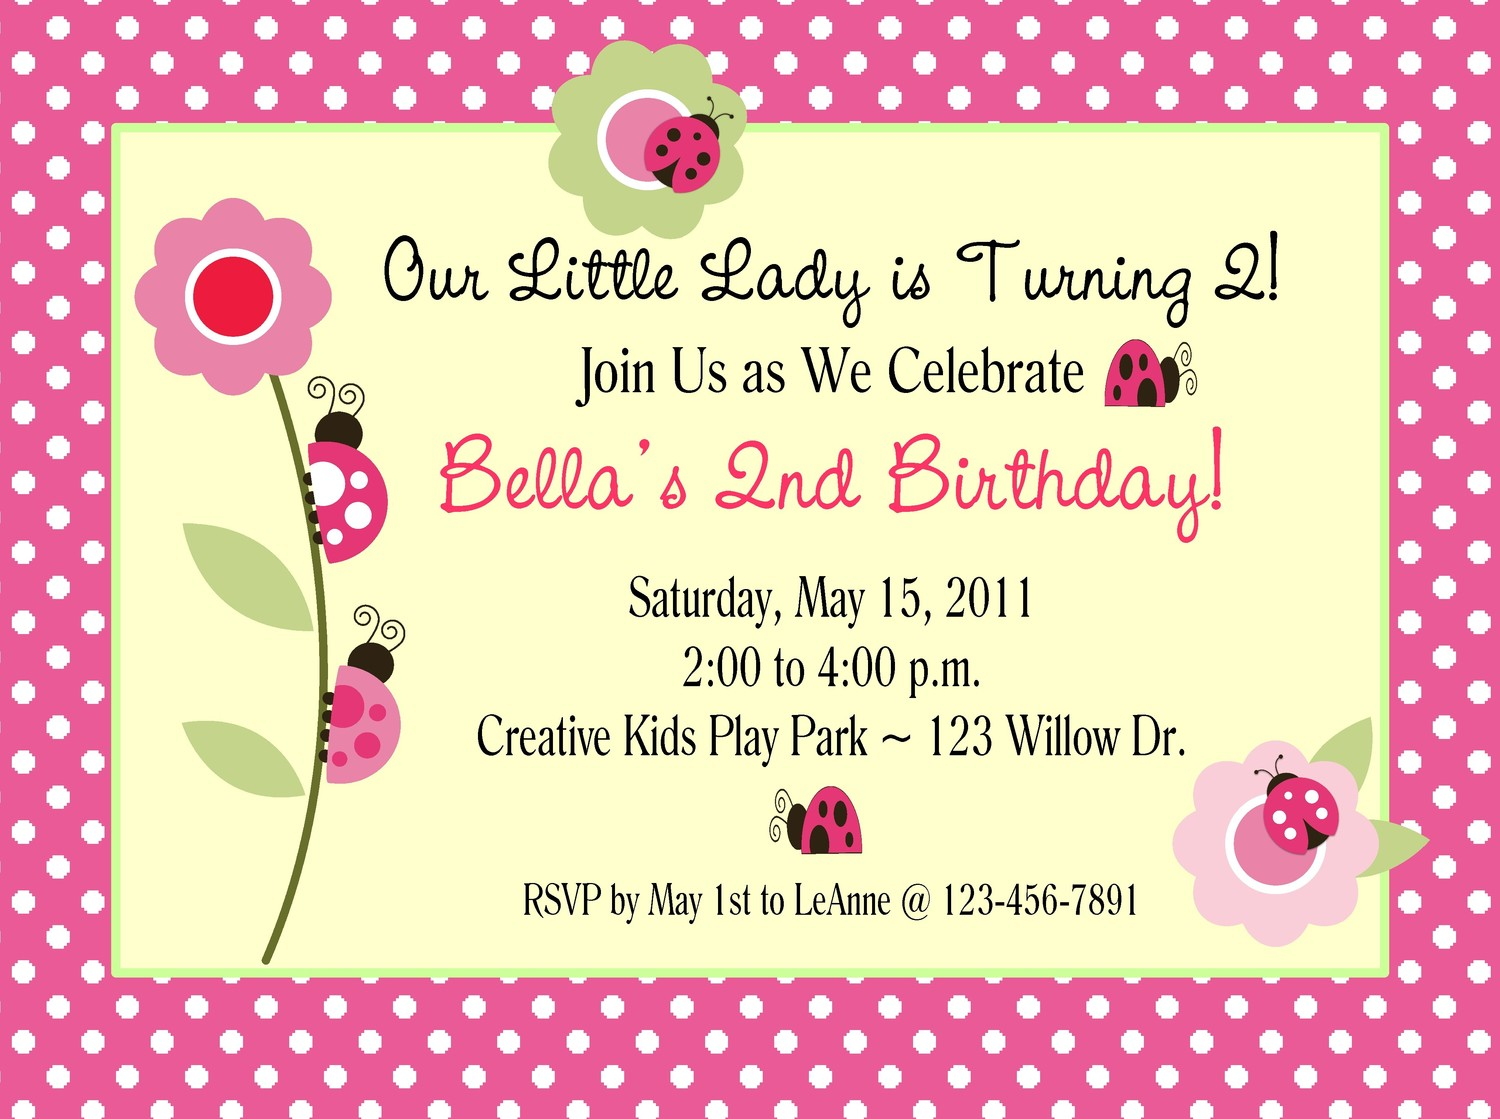 an invitation card for a birthday party ; Awesome-Nice-Birthday-Party-Invitations-Card